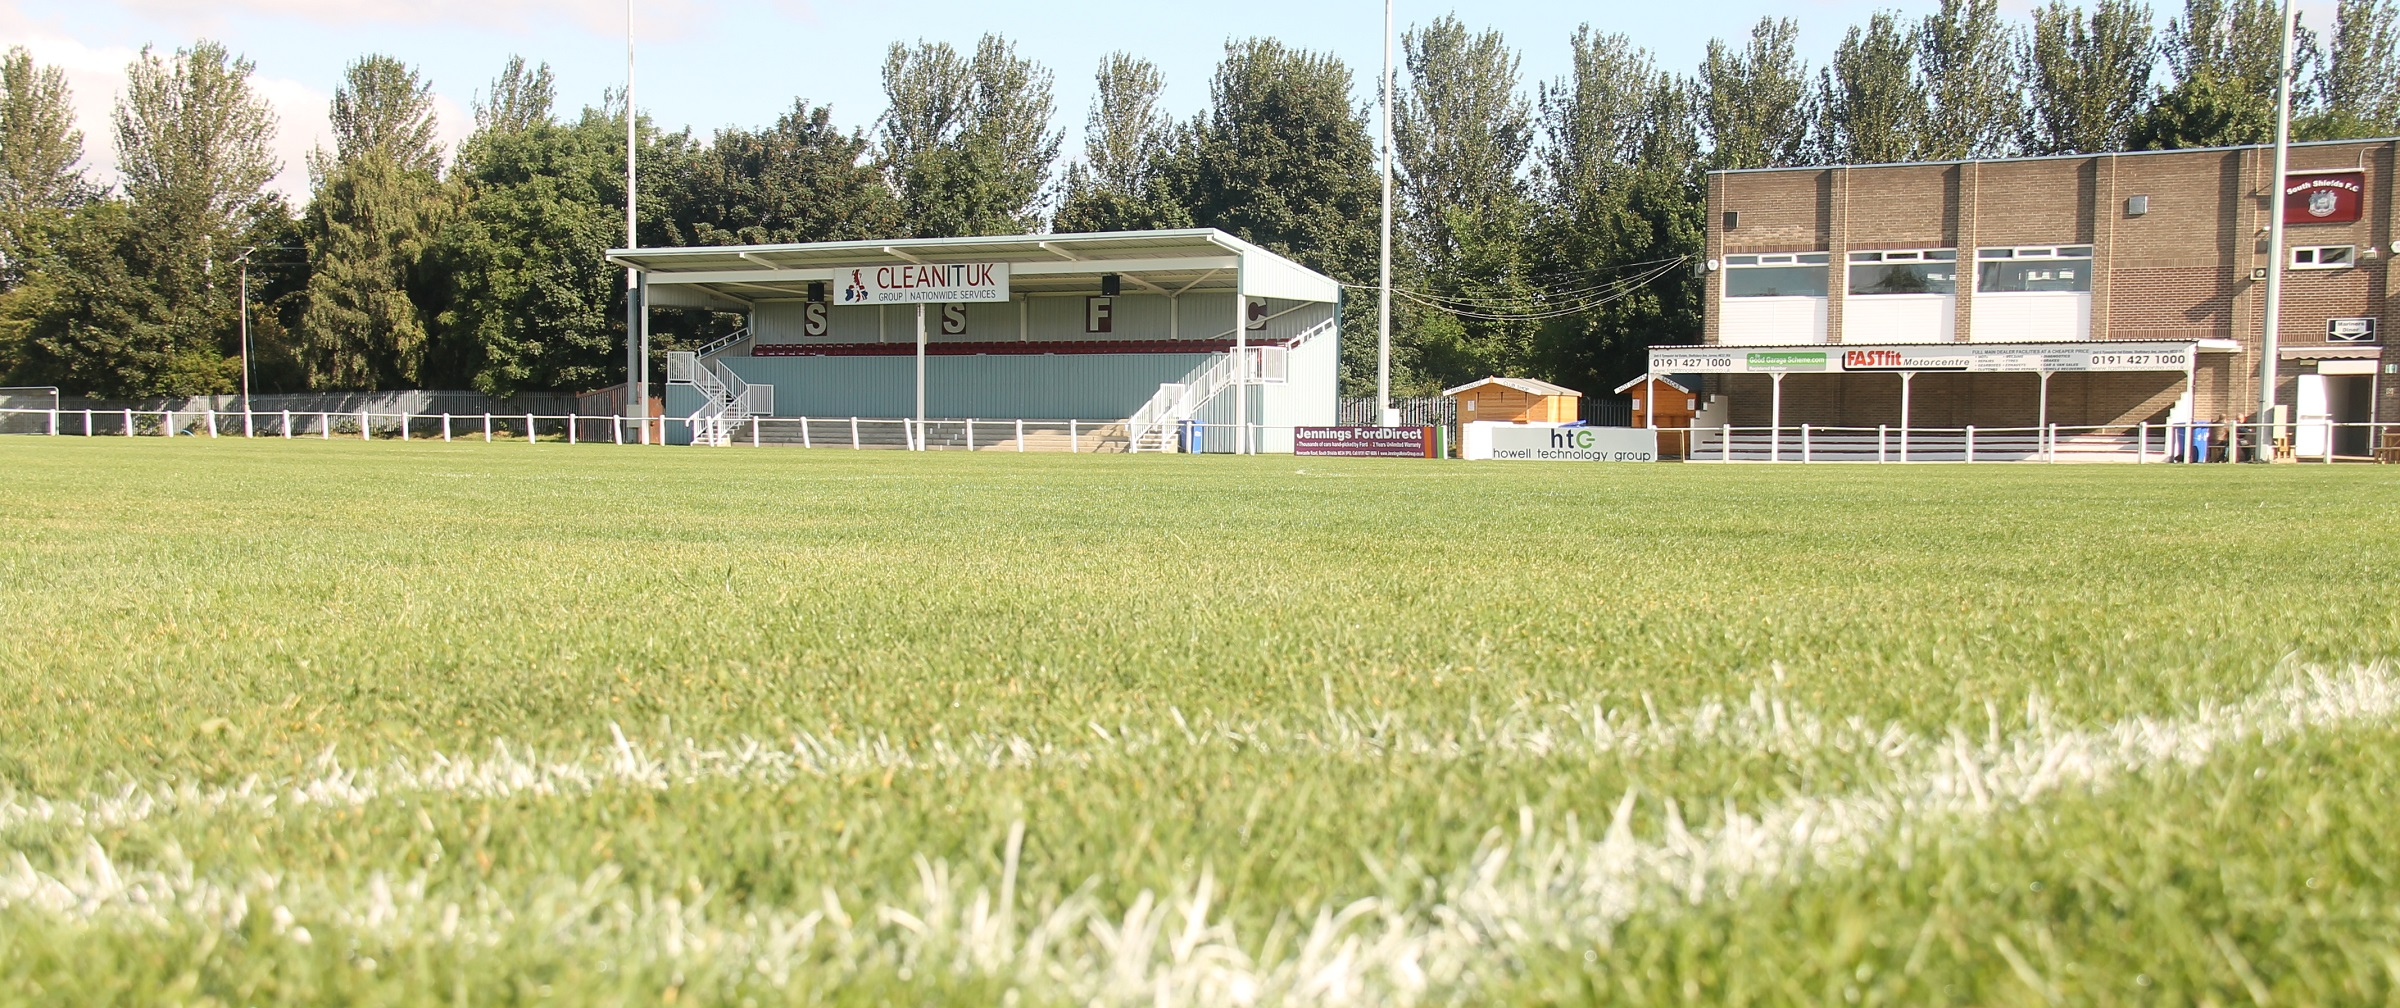 Mariners to host Runcorn Linnets in FA Vase first round